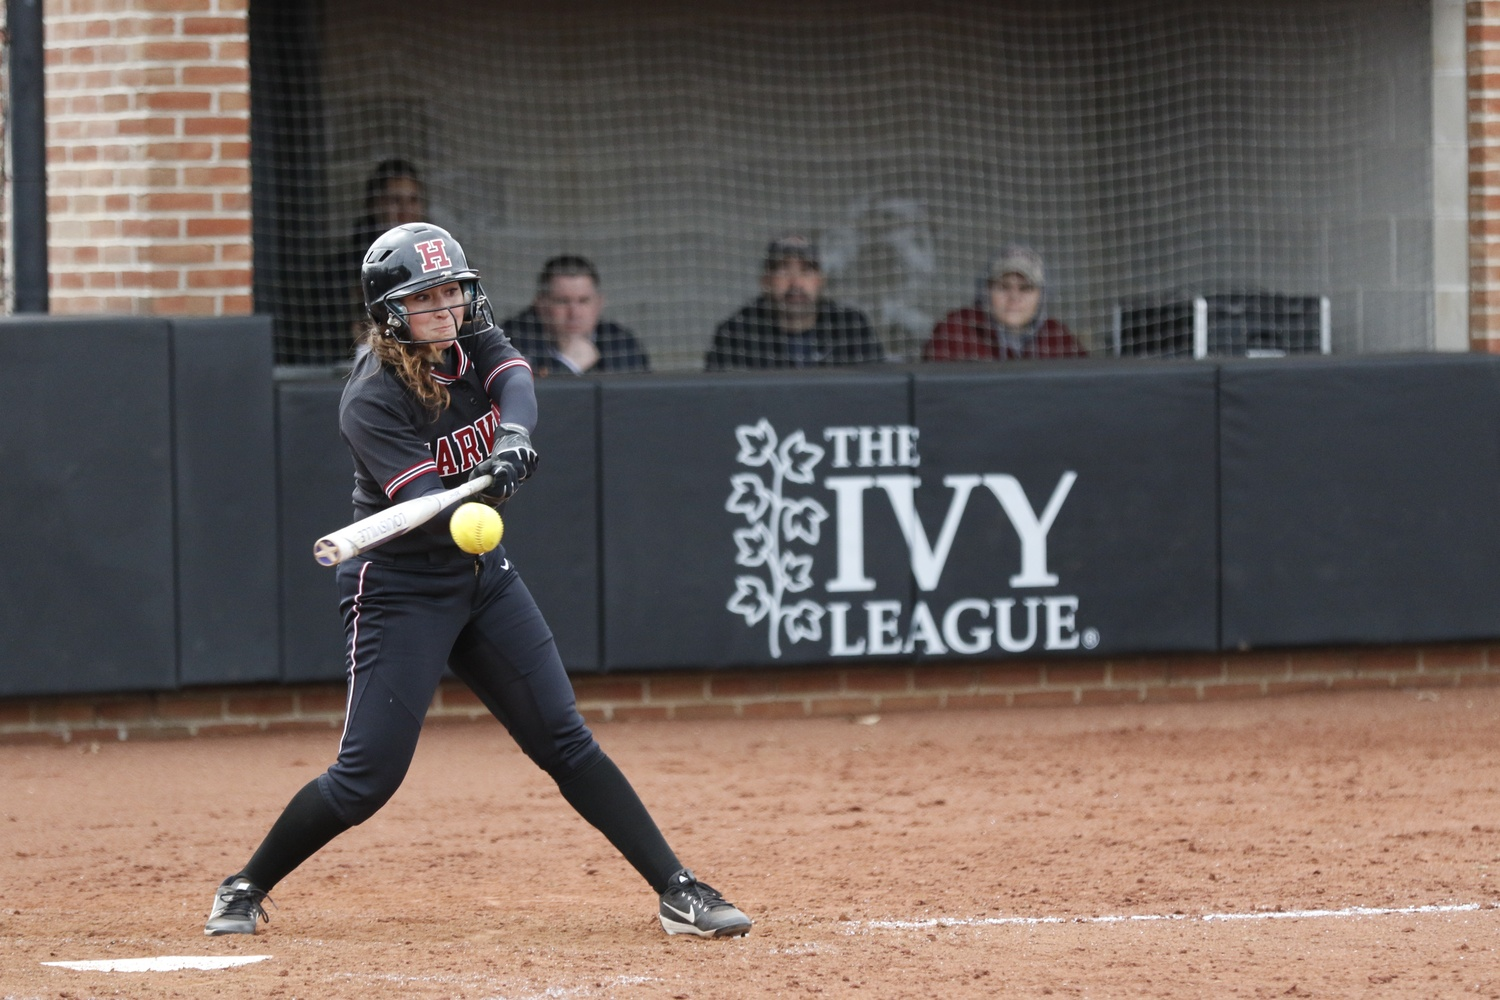 Softball Preps to Battle Dartmouth in Ivy League Title Match